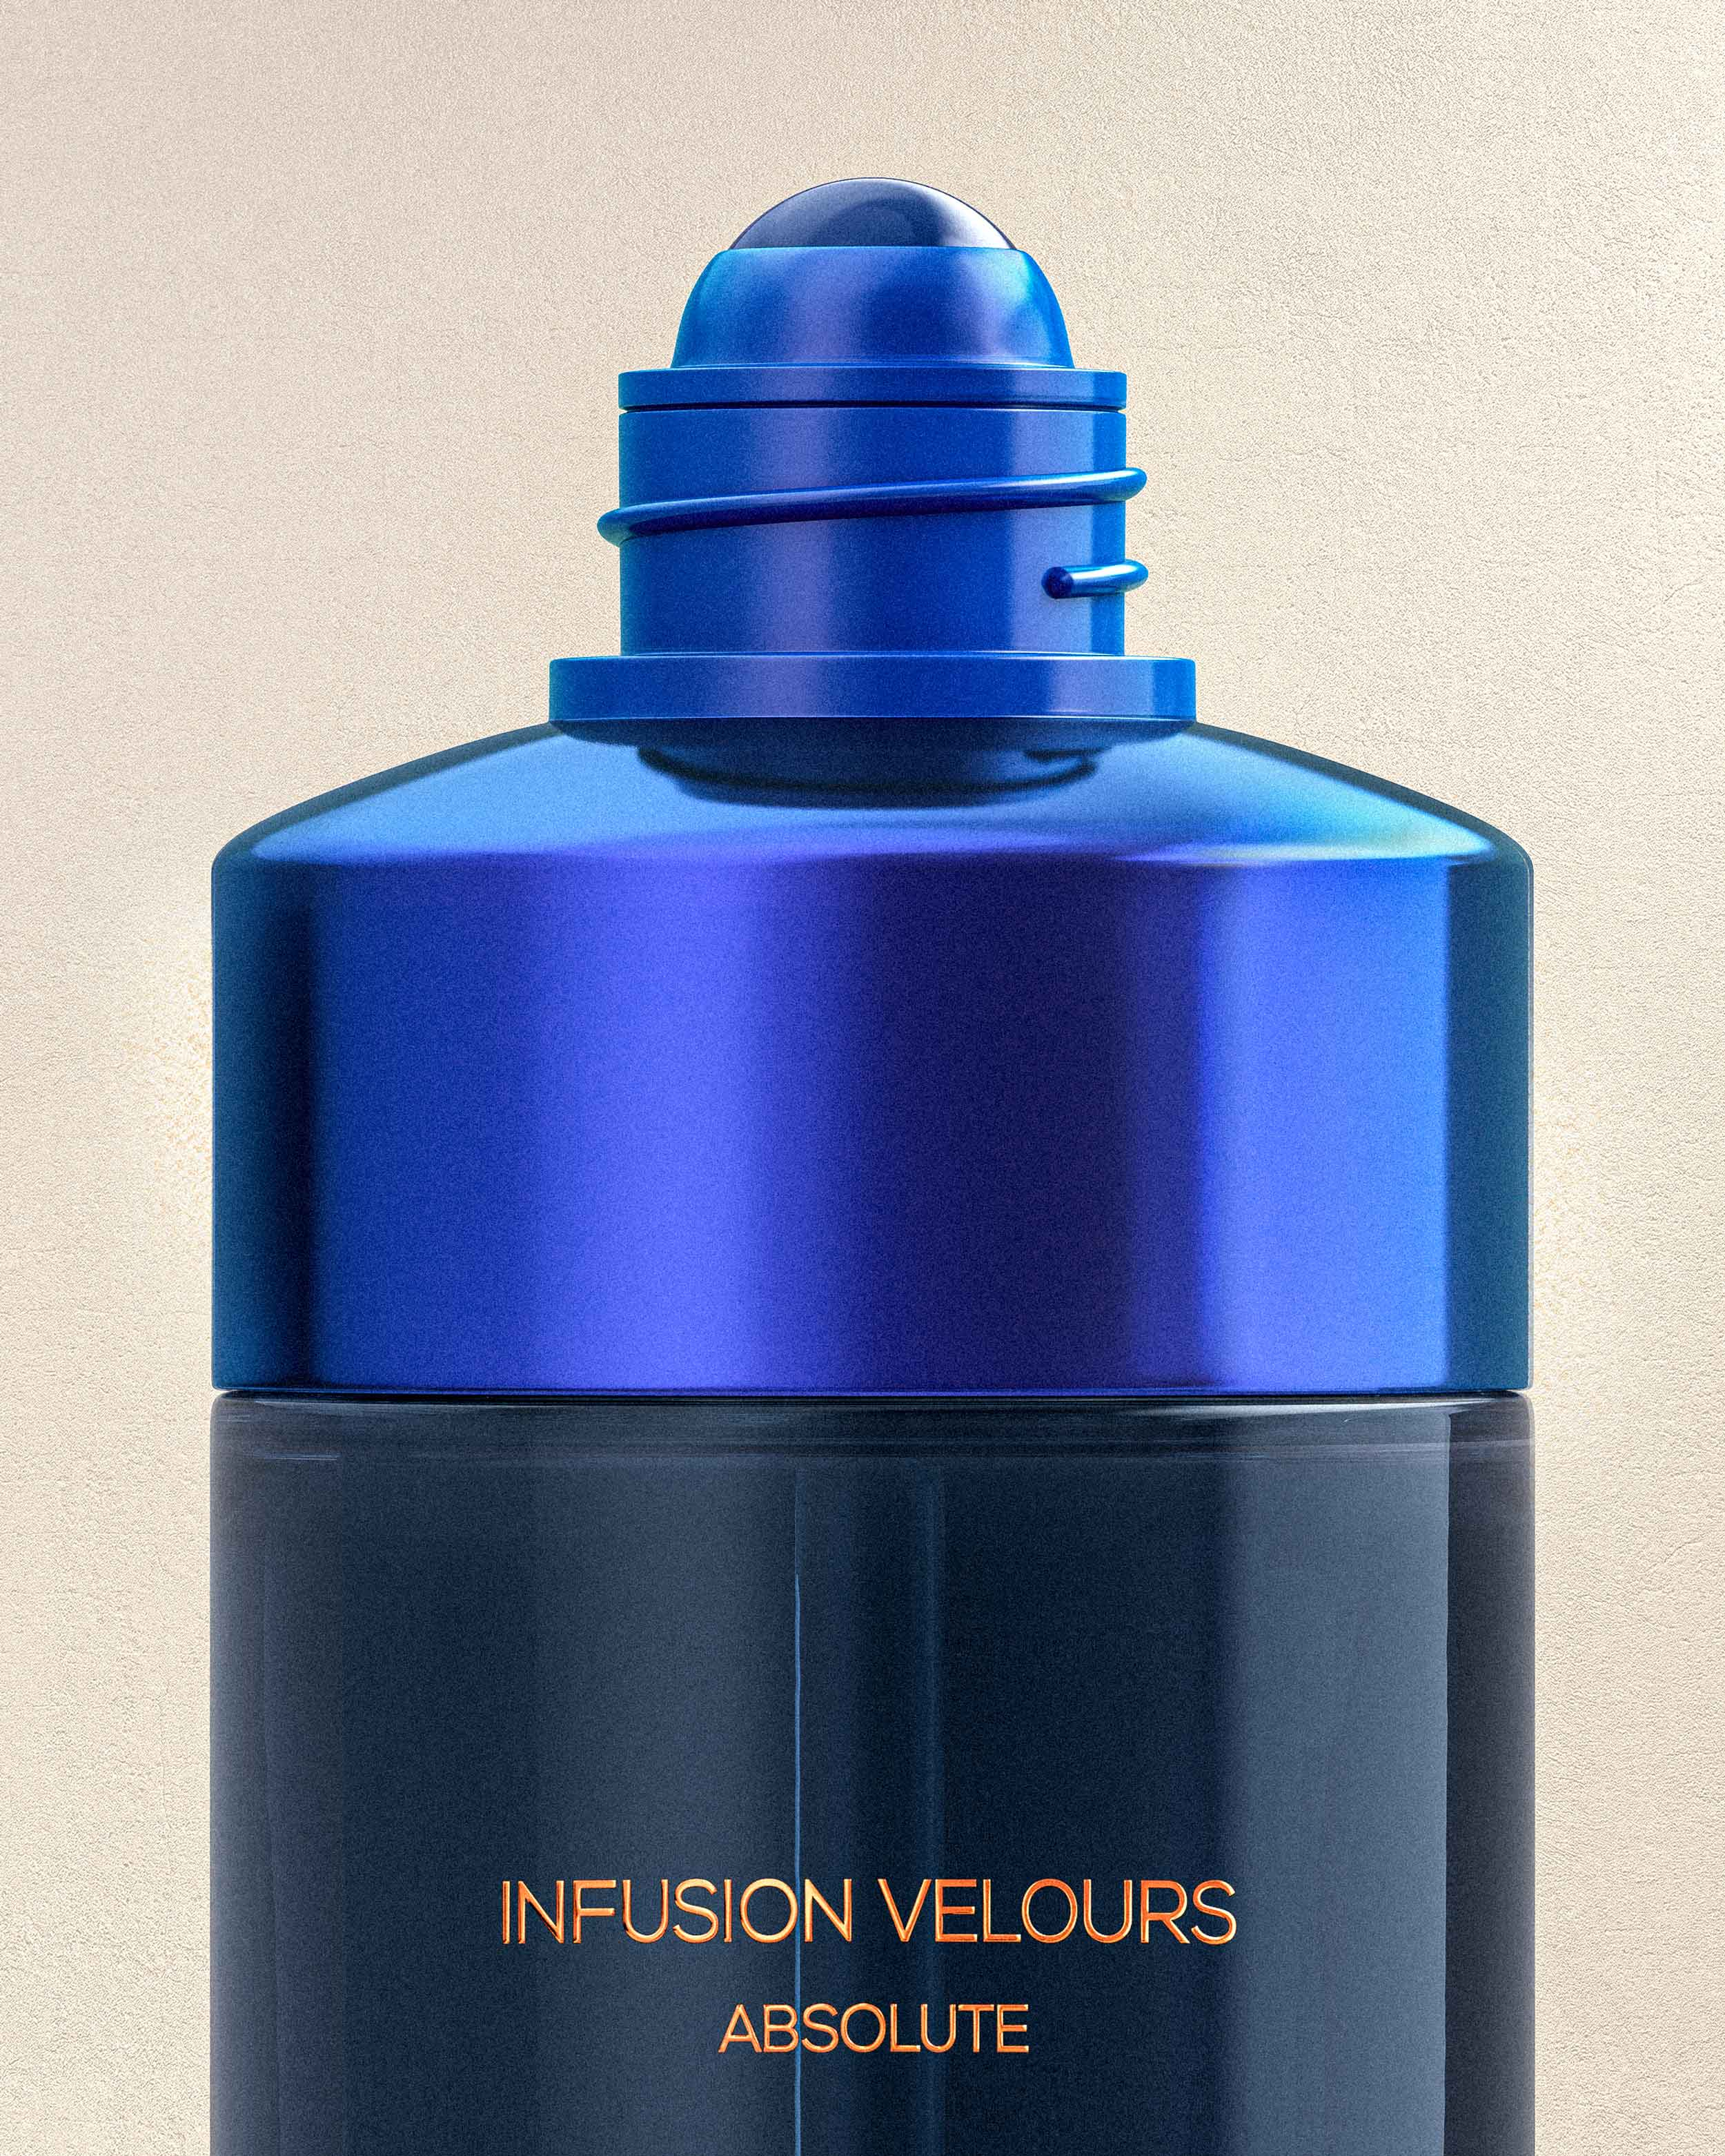 OJAR Absolute Infusion Velours Perfume Roll-on